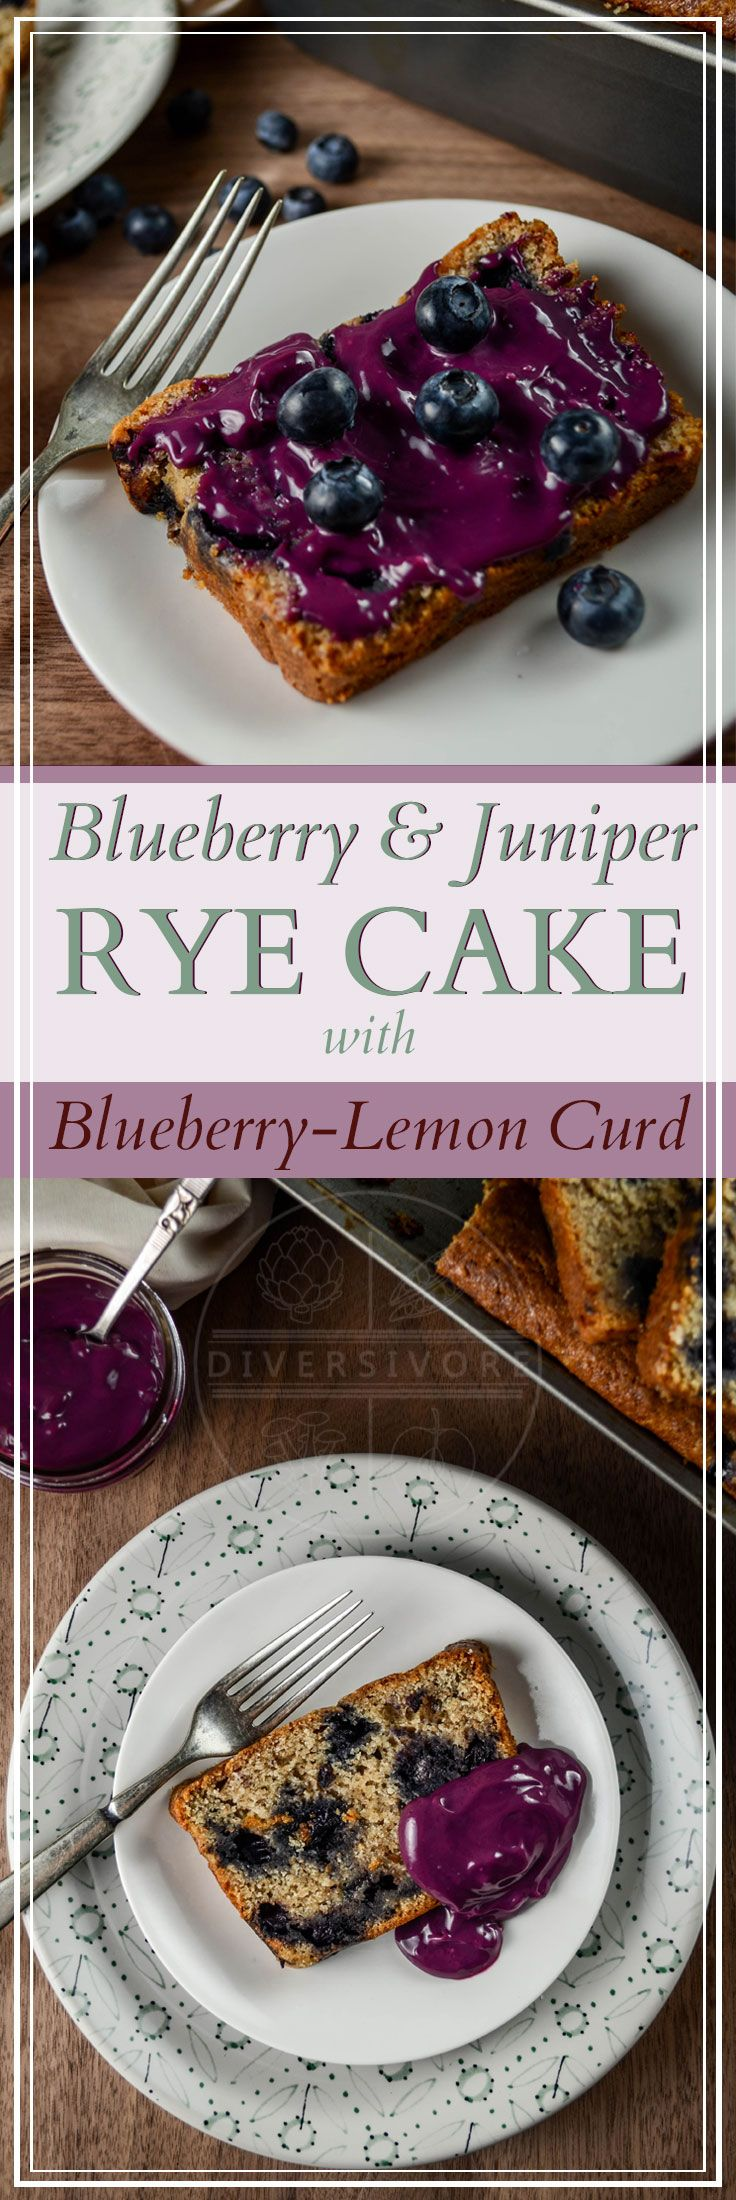 Blueberry-Juniper Rye Cake with a Lemon-Blueberry Curd (#sponsored by BC Egg), plus tips and tricks for three different methods for making fruit curd.